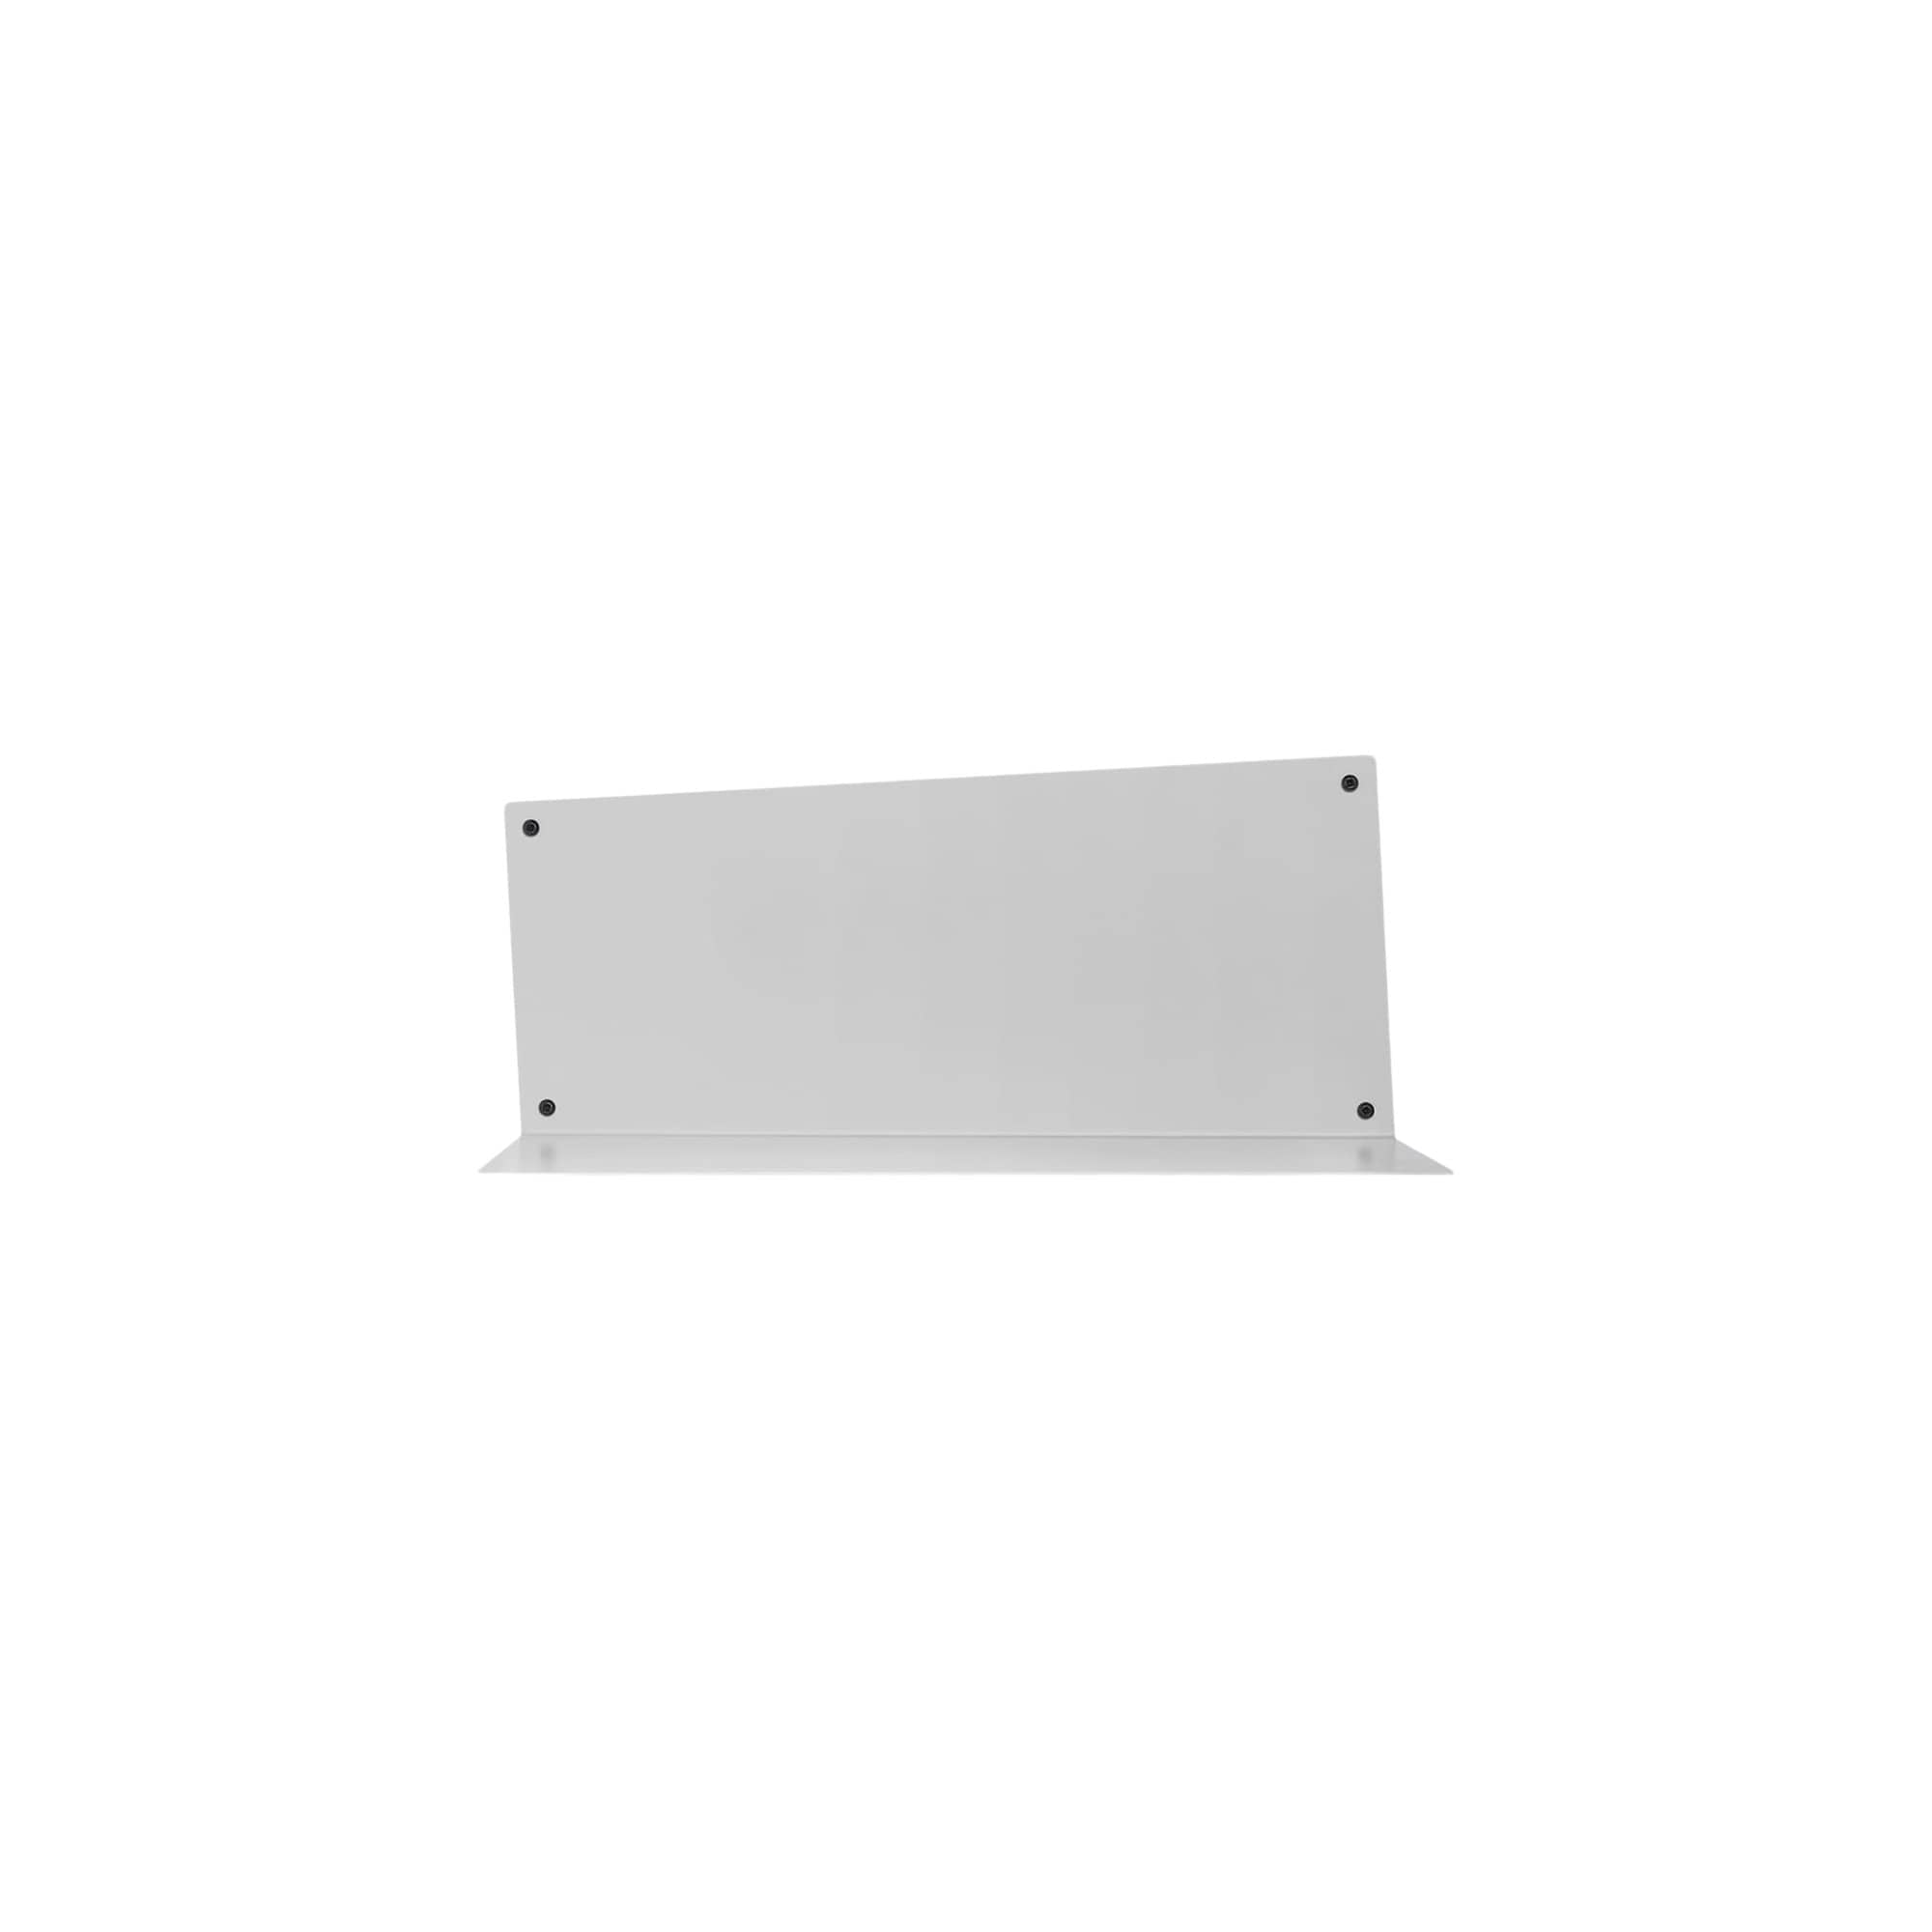 ANGLE Shelf Small - Light Grey